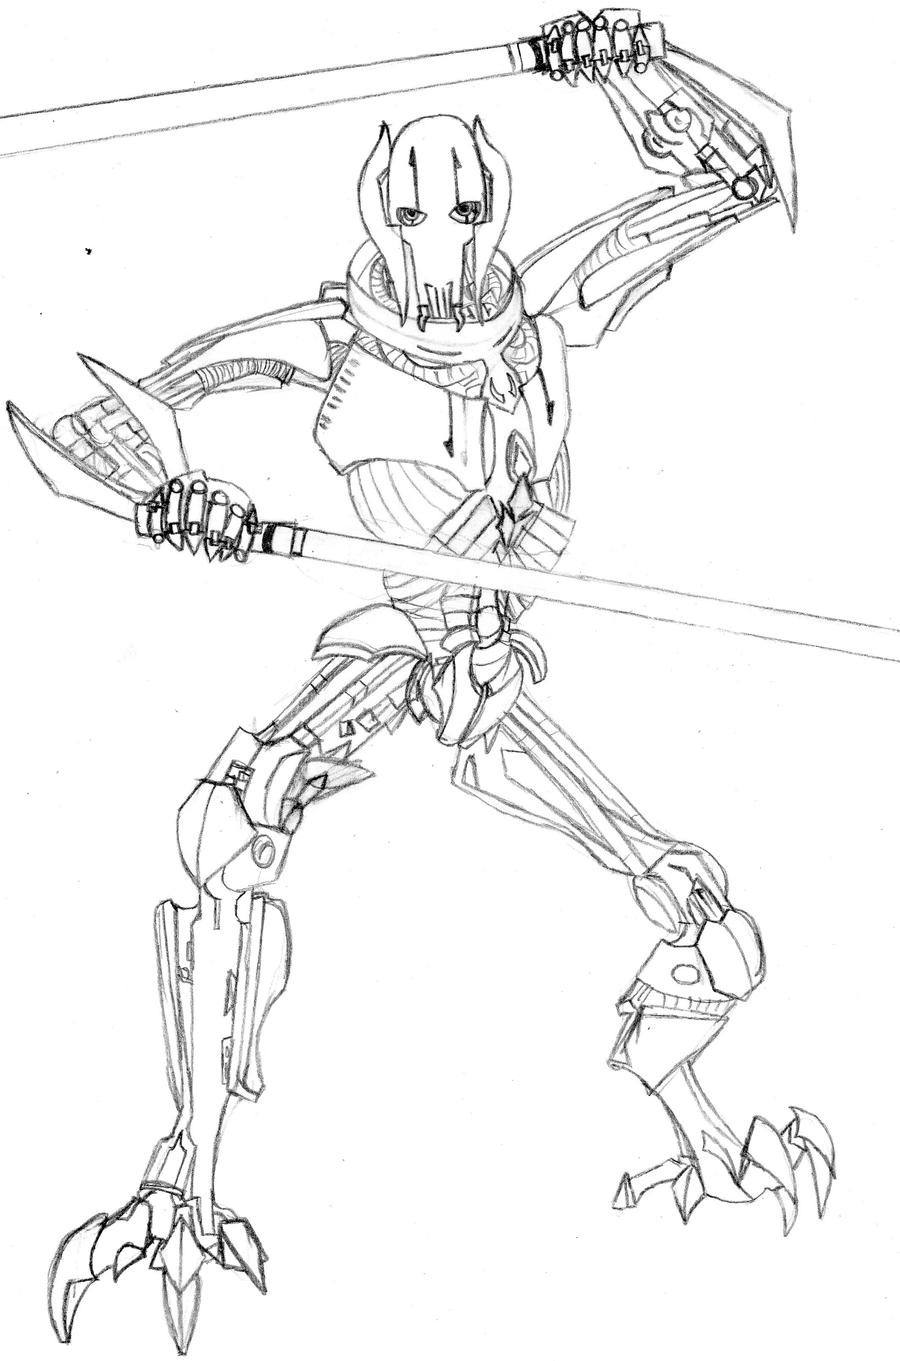 General Grievous by Loopy-Lass